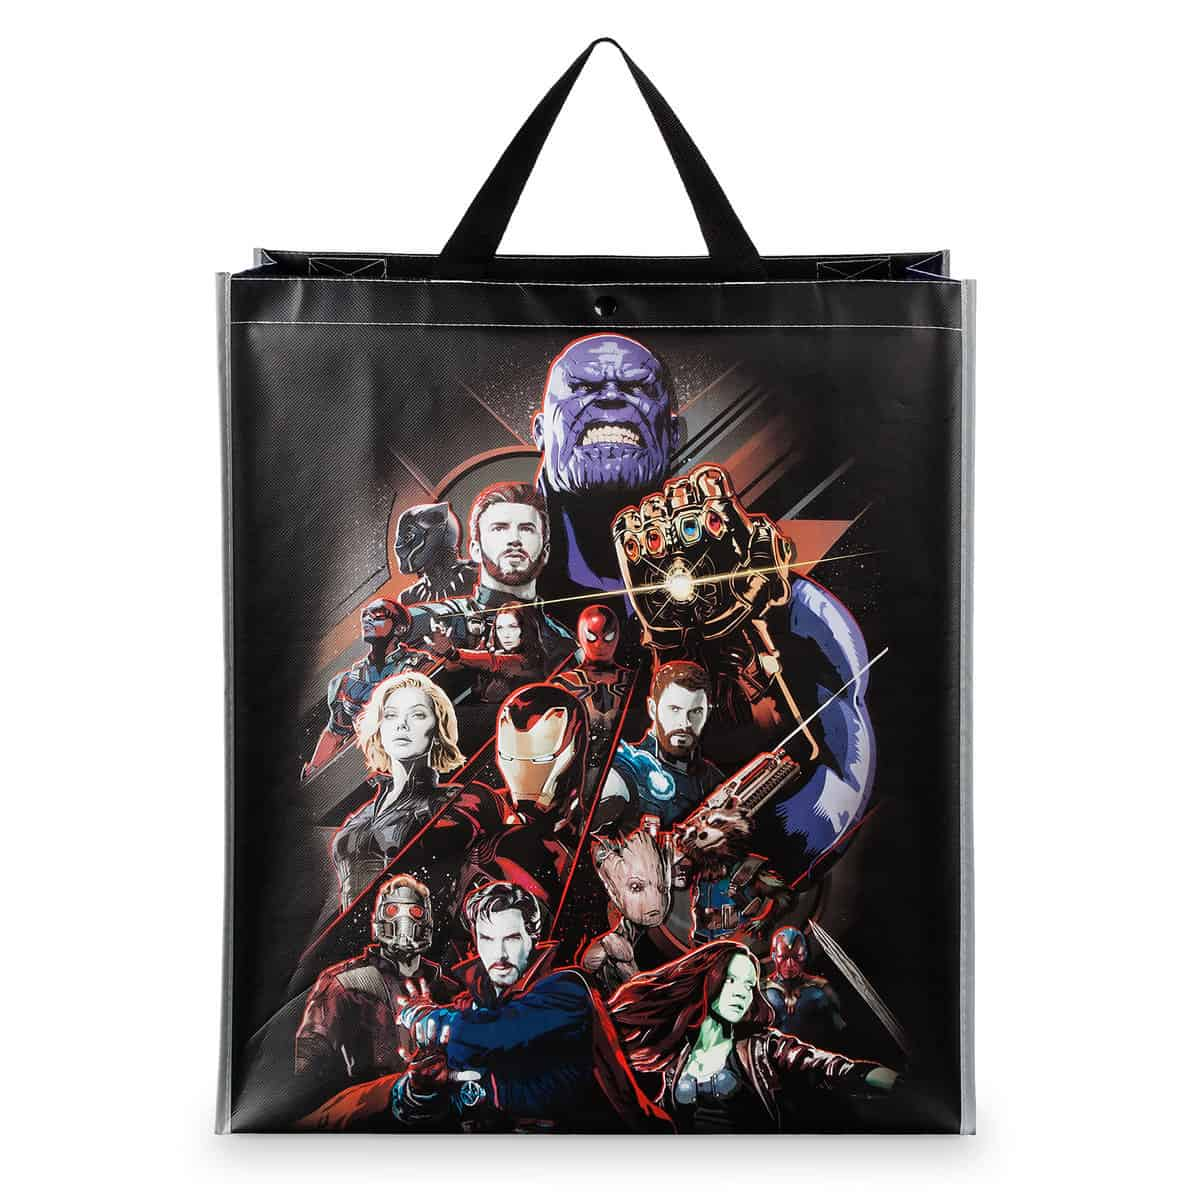 An Avengers Infinity War Tote Bag for all your Avengers needs.